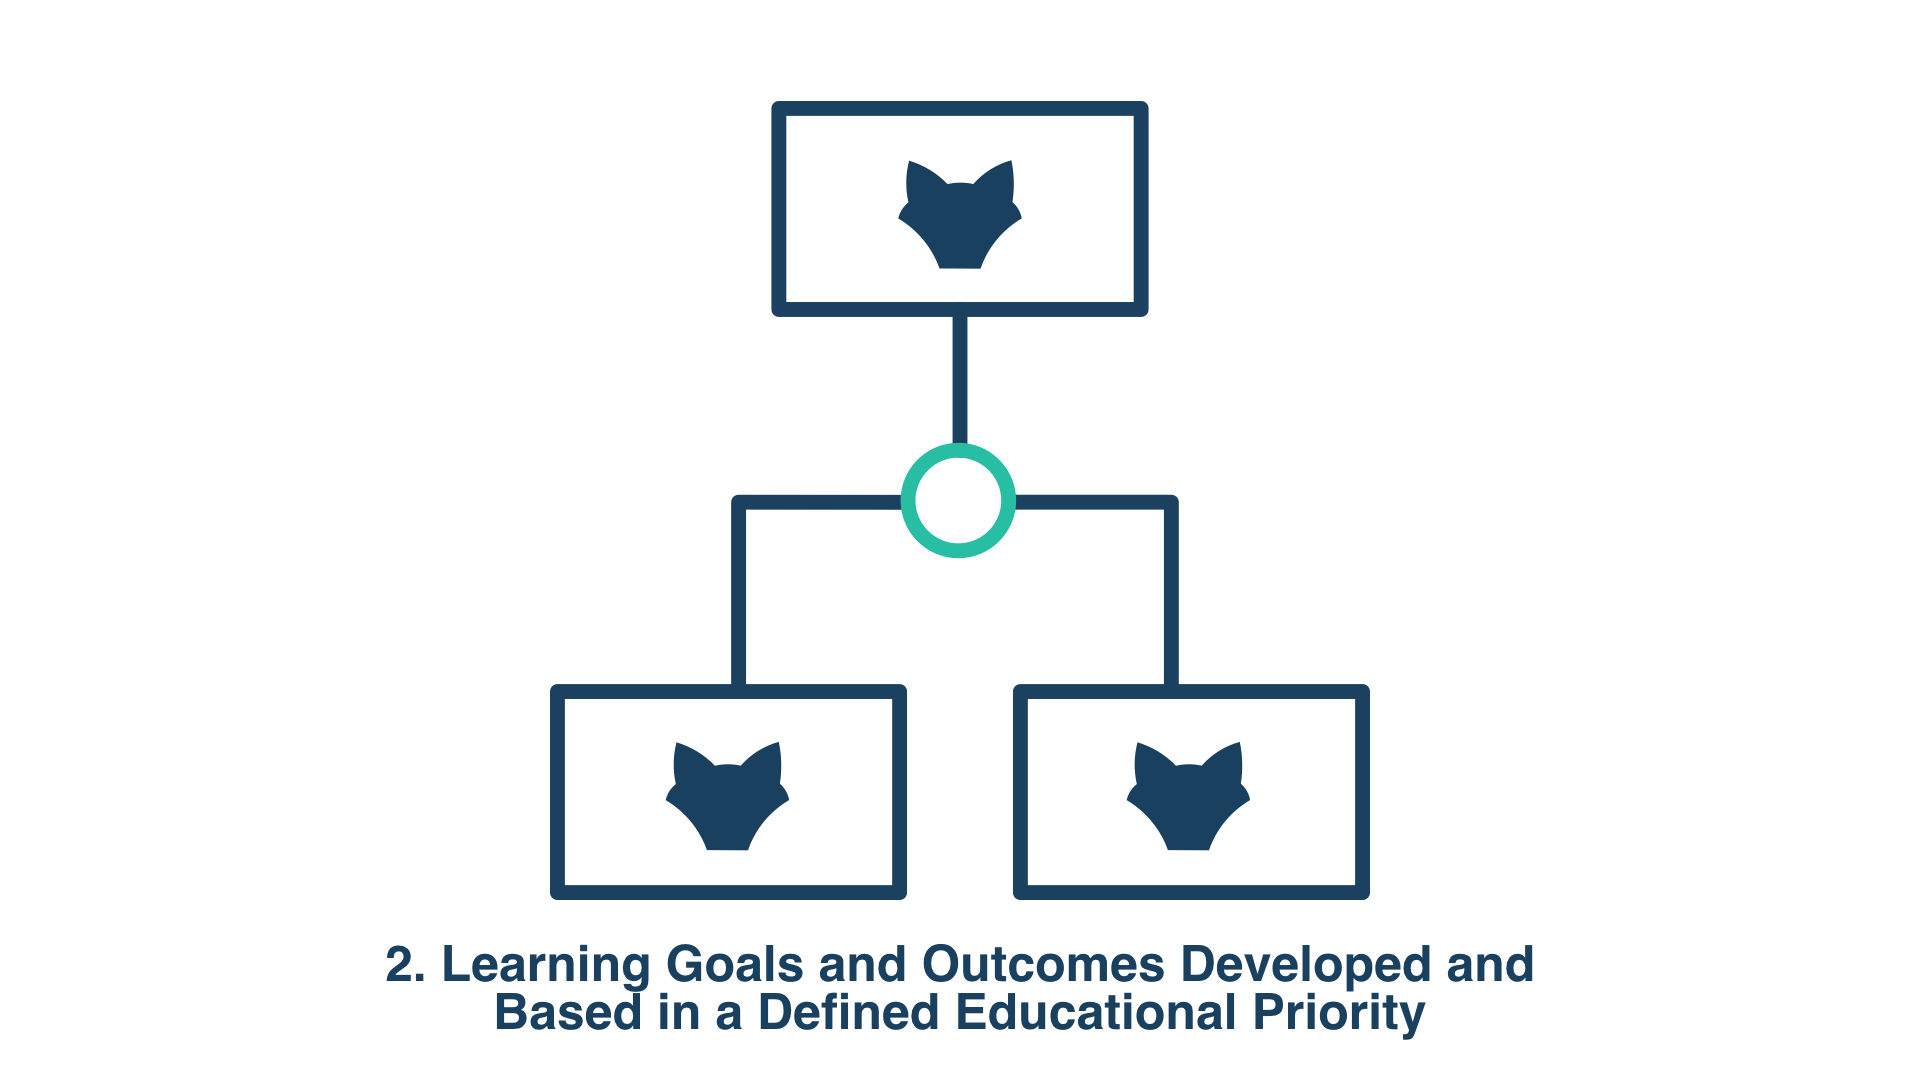 2. Learning Goals and Outcomes Developed and Based in a Defined Educational Priority